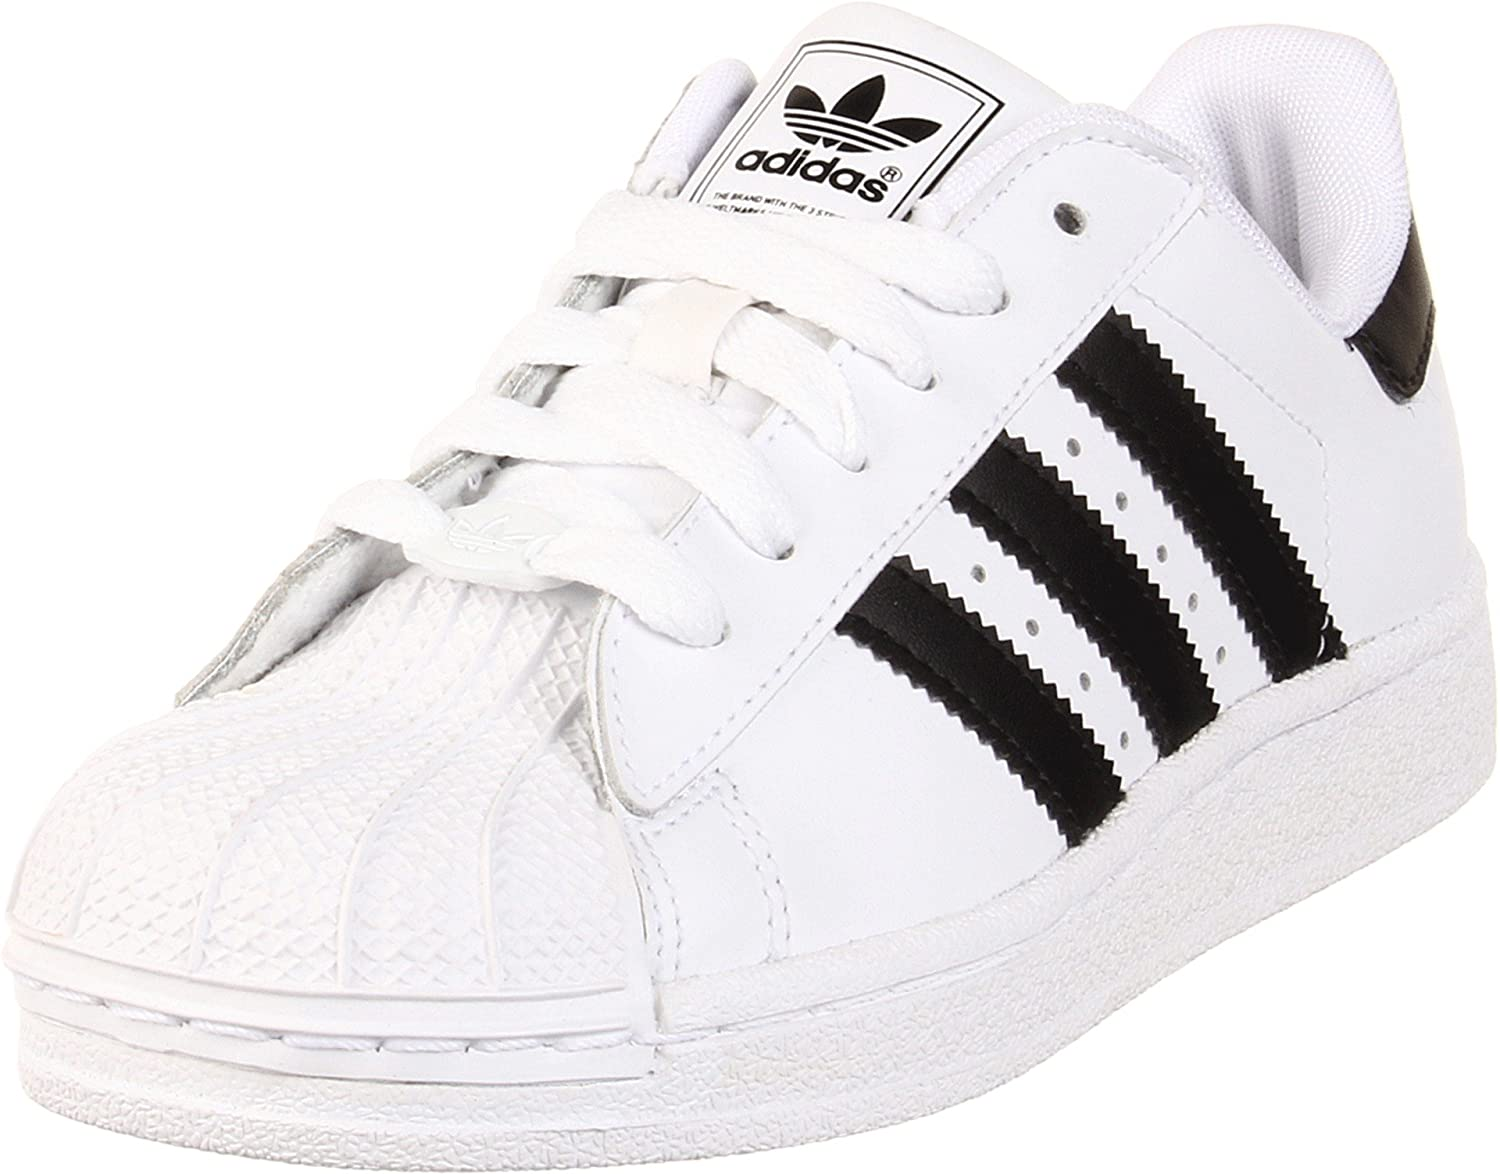 adidas superstar ii white black size 7